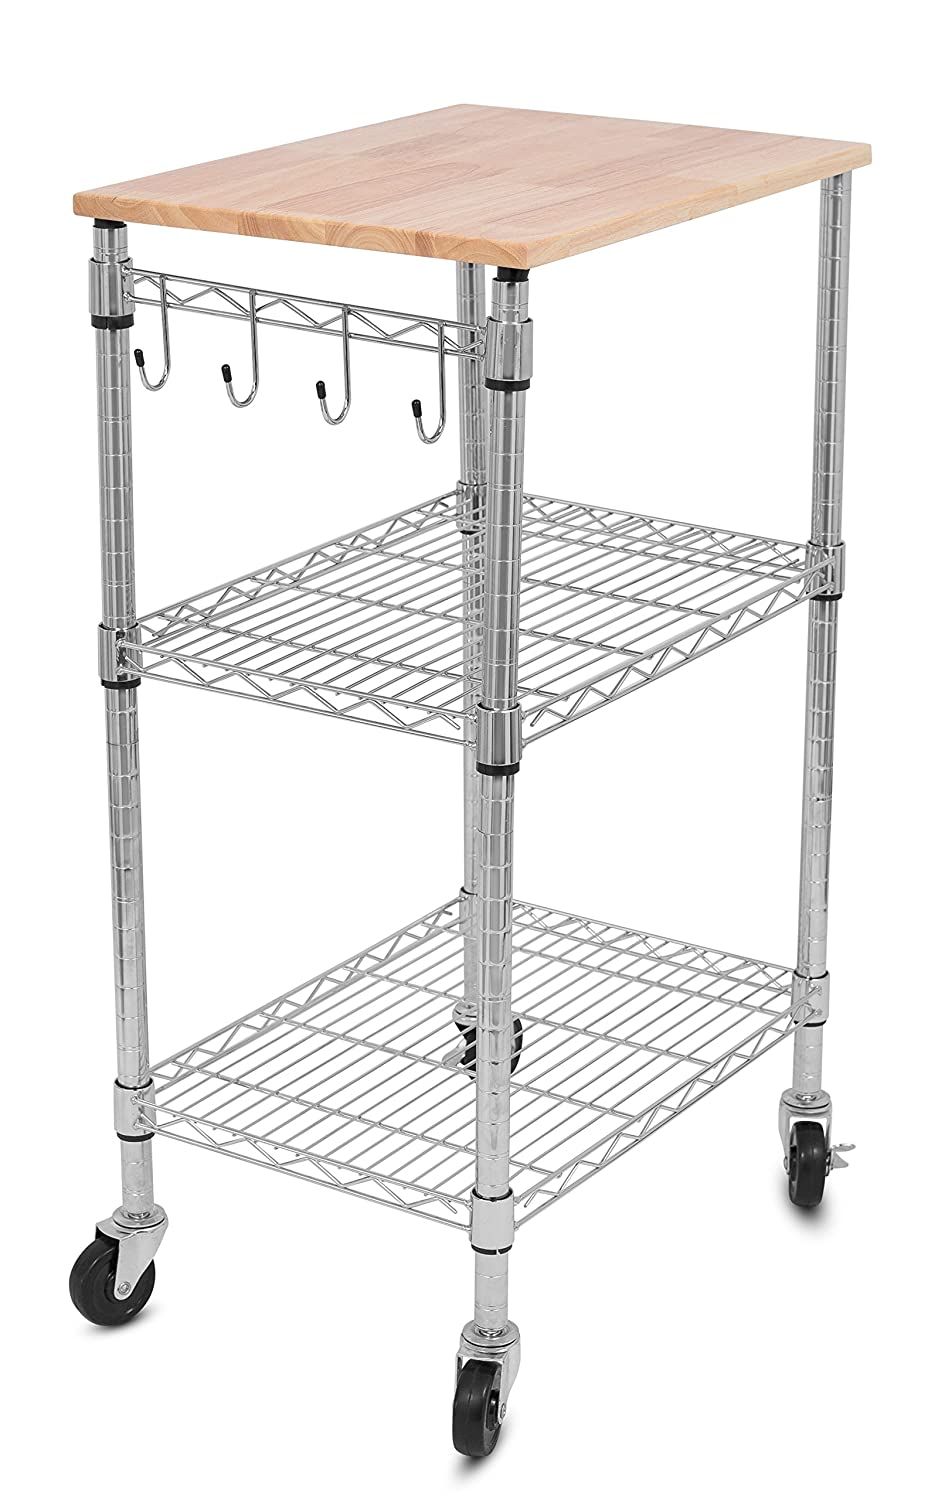 carts rolling steel trolley kitchen drawers browse costway walmart cart com stainless w flip top casters babd white islands home